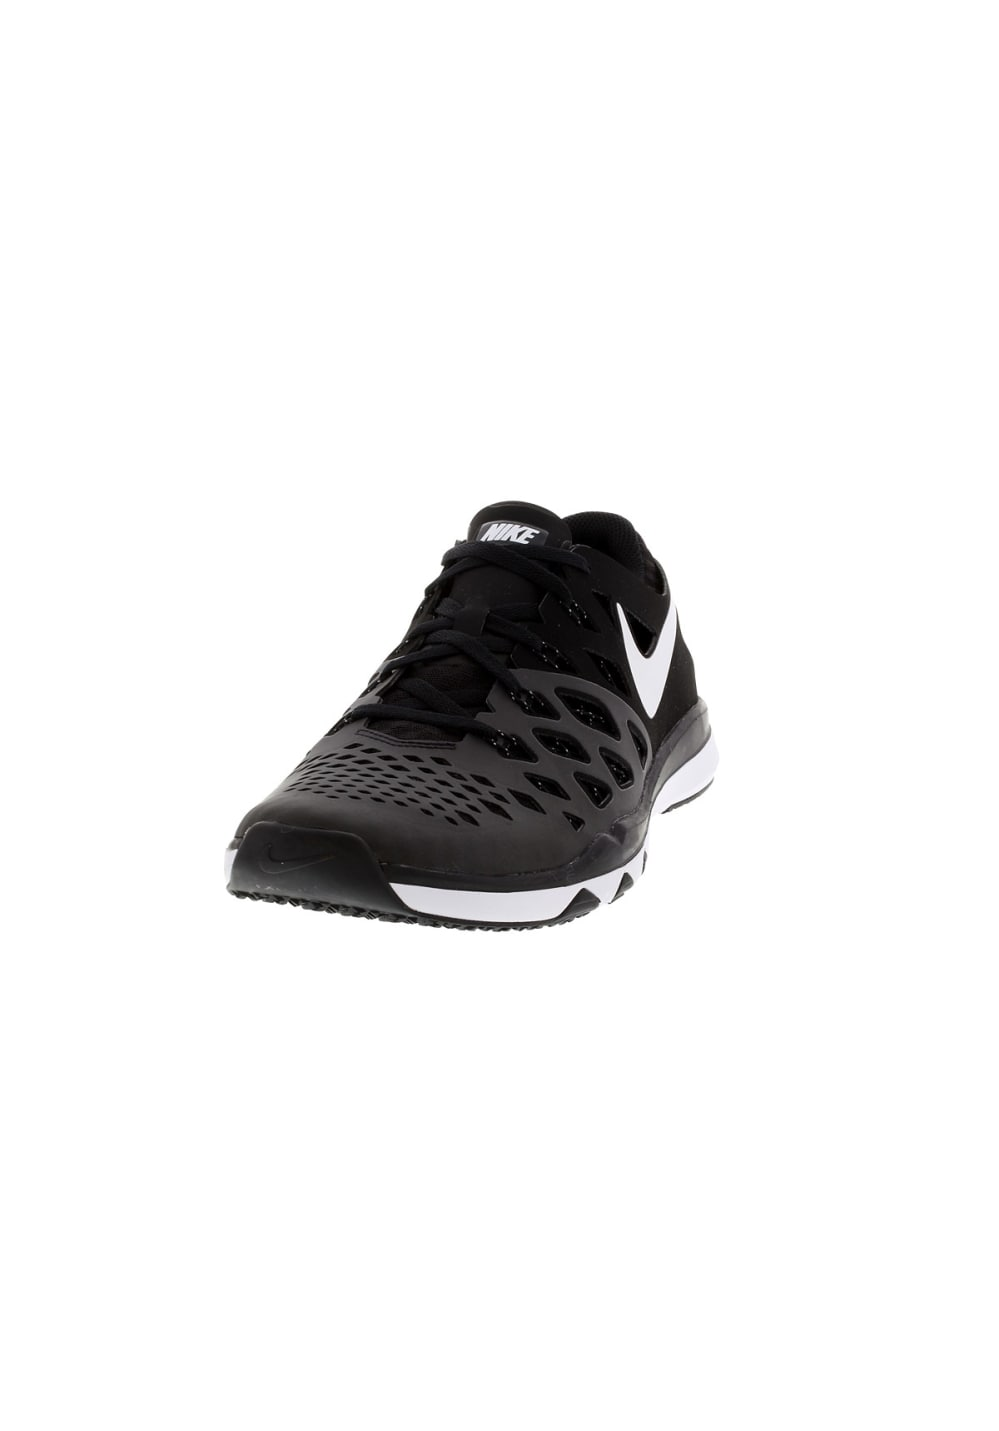 2c5f4853023a5 Nike Zoom Train Speed 4 - Fitness shoes for Men - Black | 21RUN